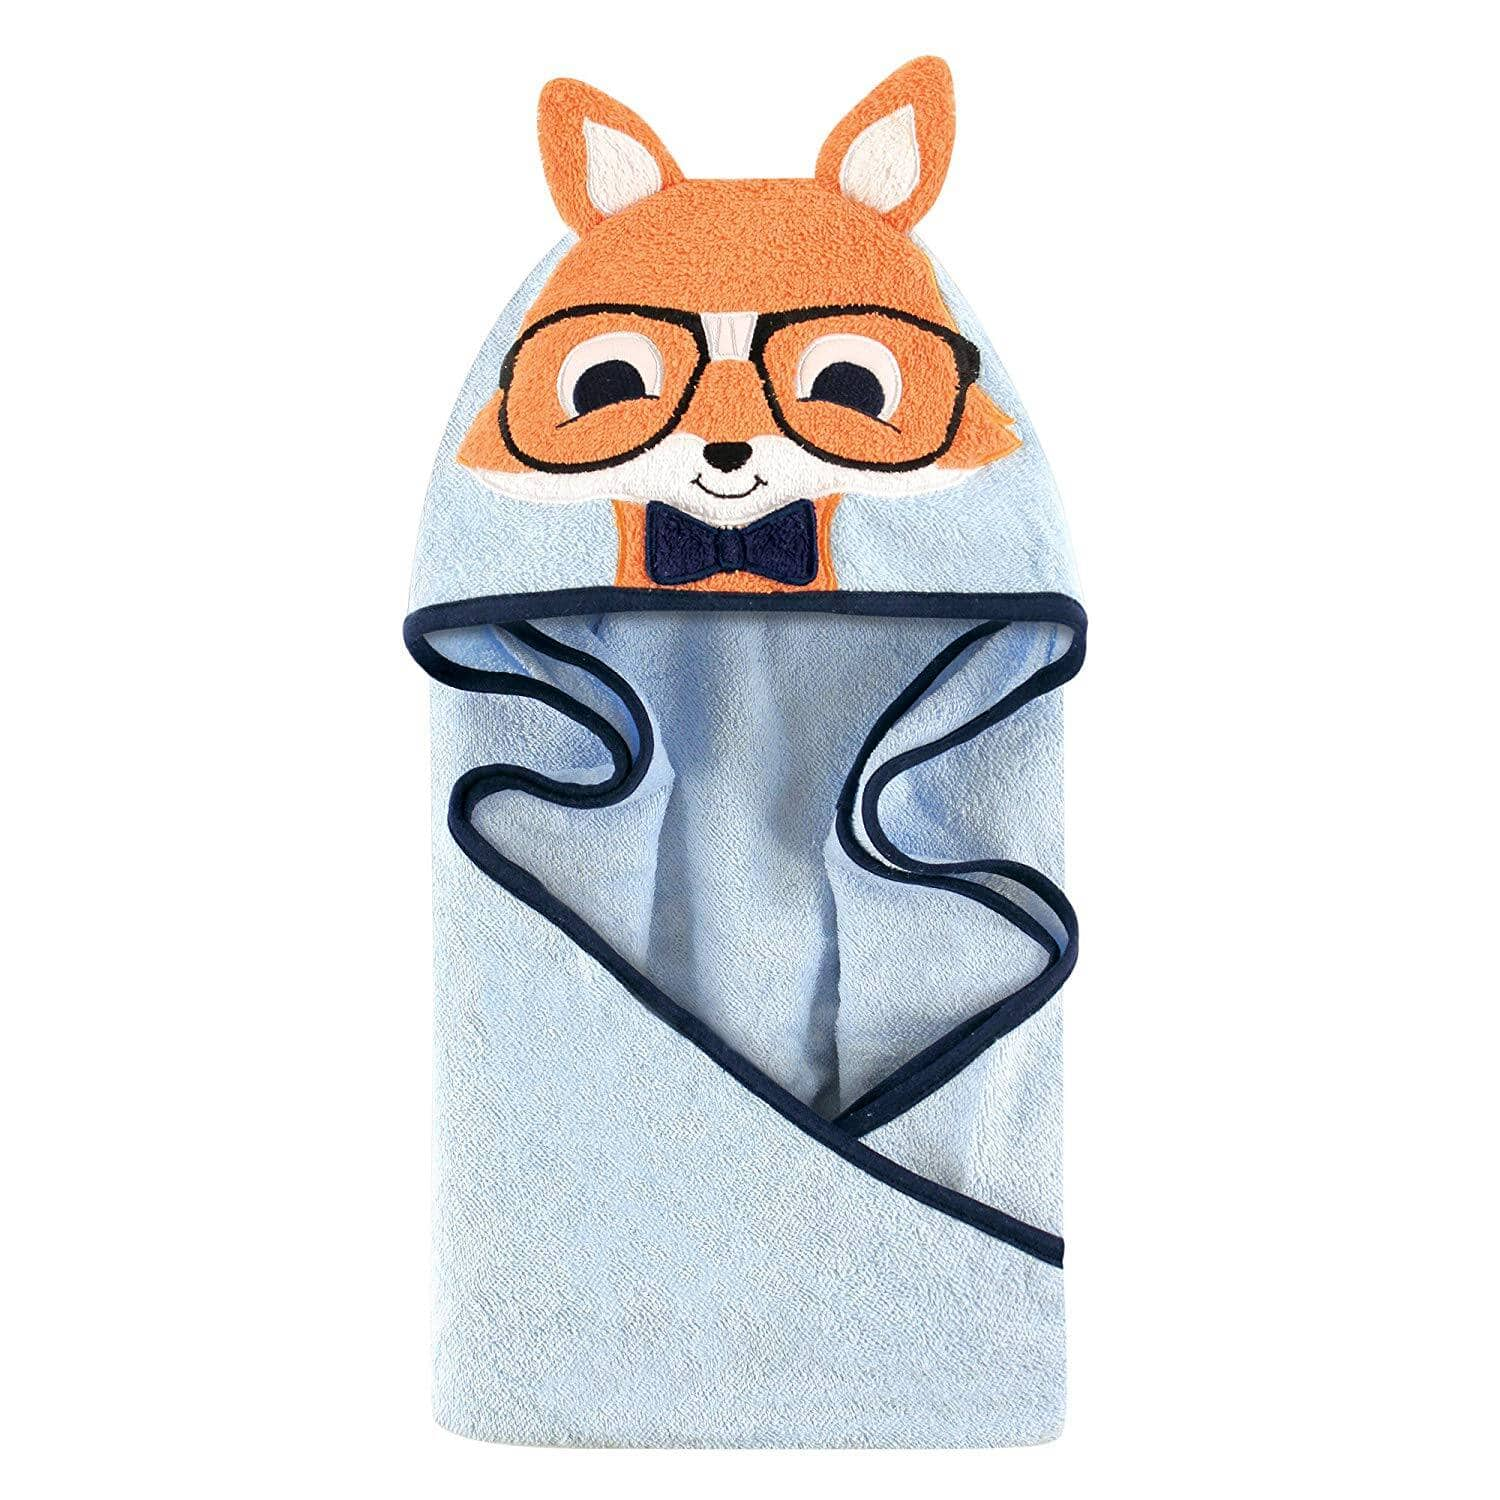 "Hudson Baby Animal 33""x33"" Hooded Towel (Nerdy Fox) $4.67 + Free S&H w/ Prime or orders $25+  ~ Amazon"